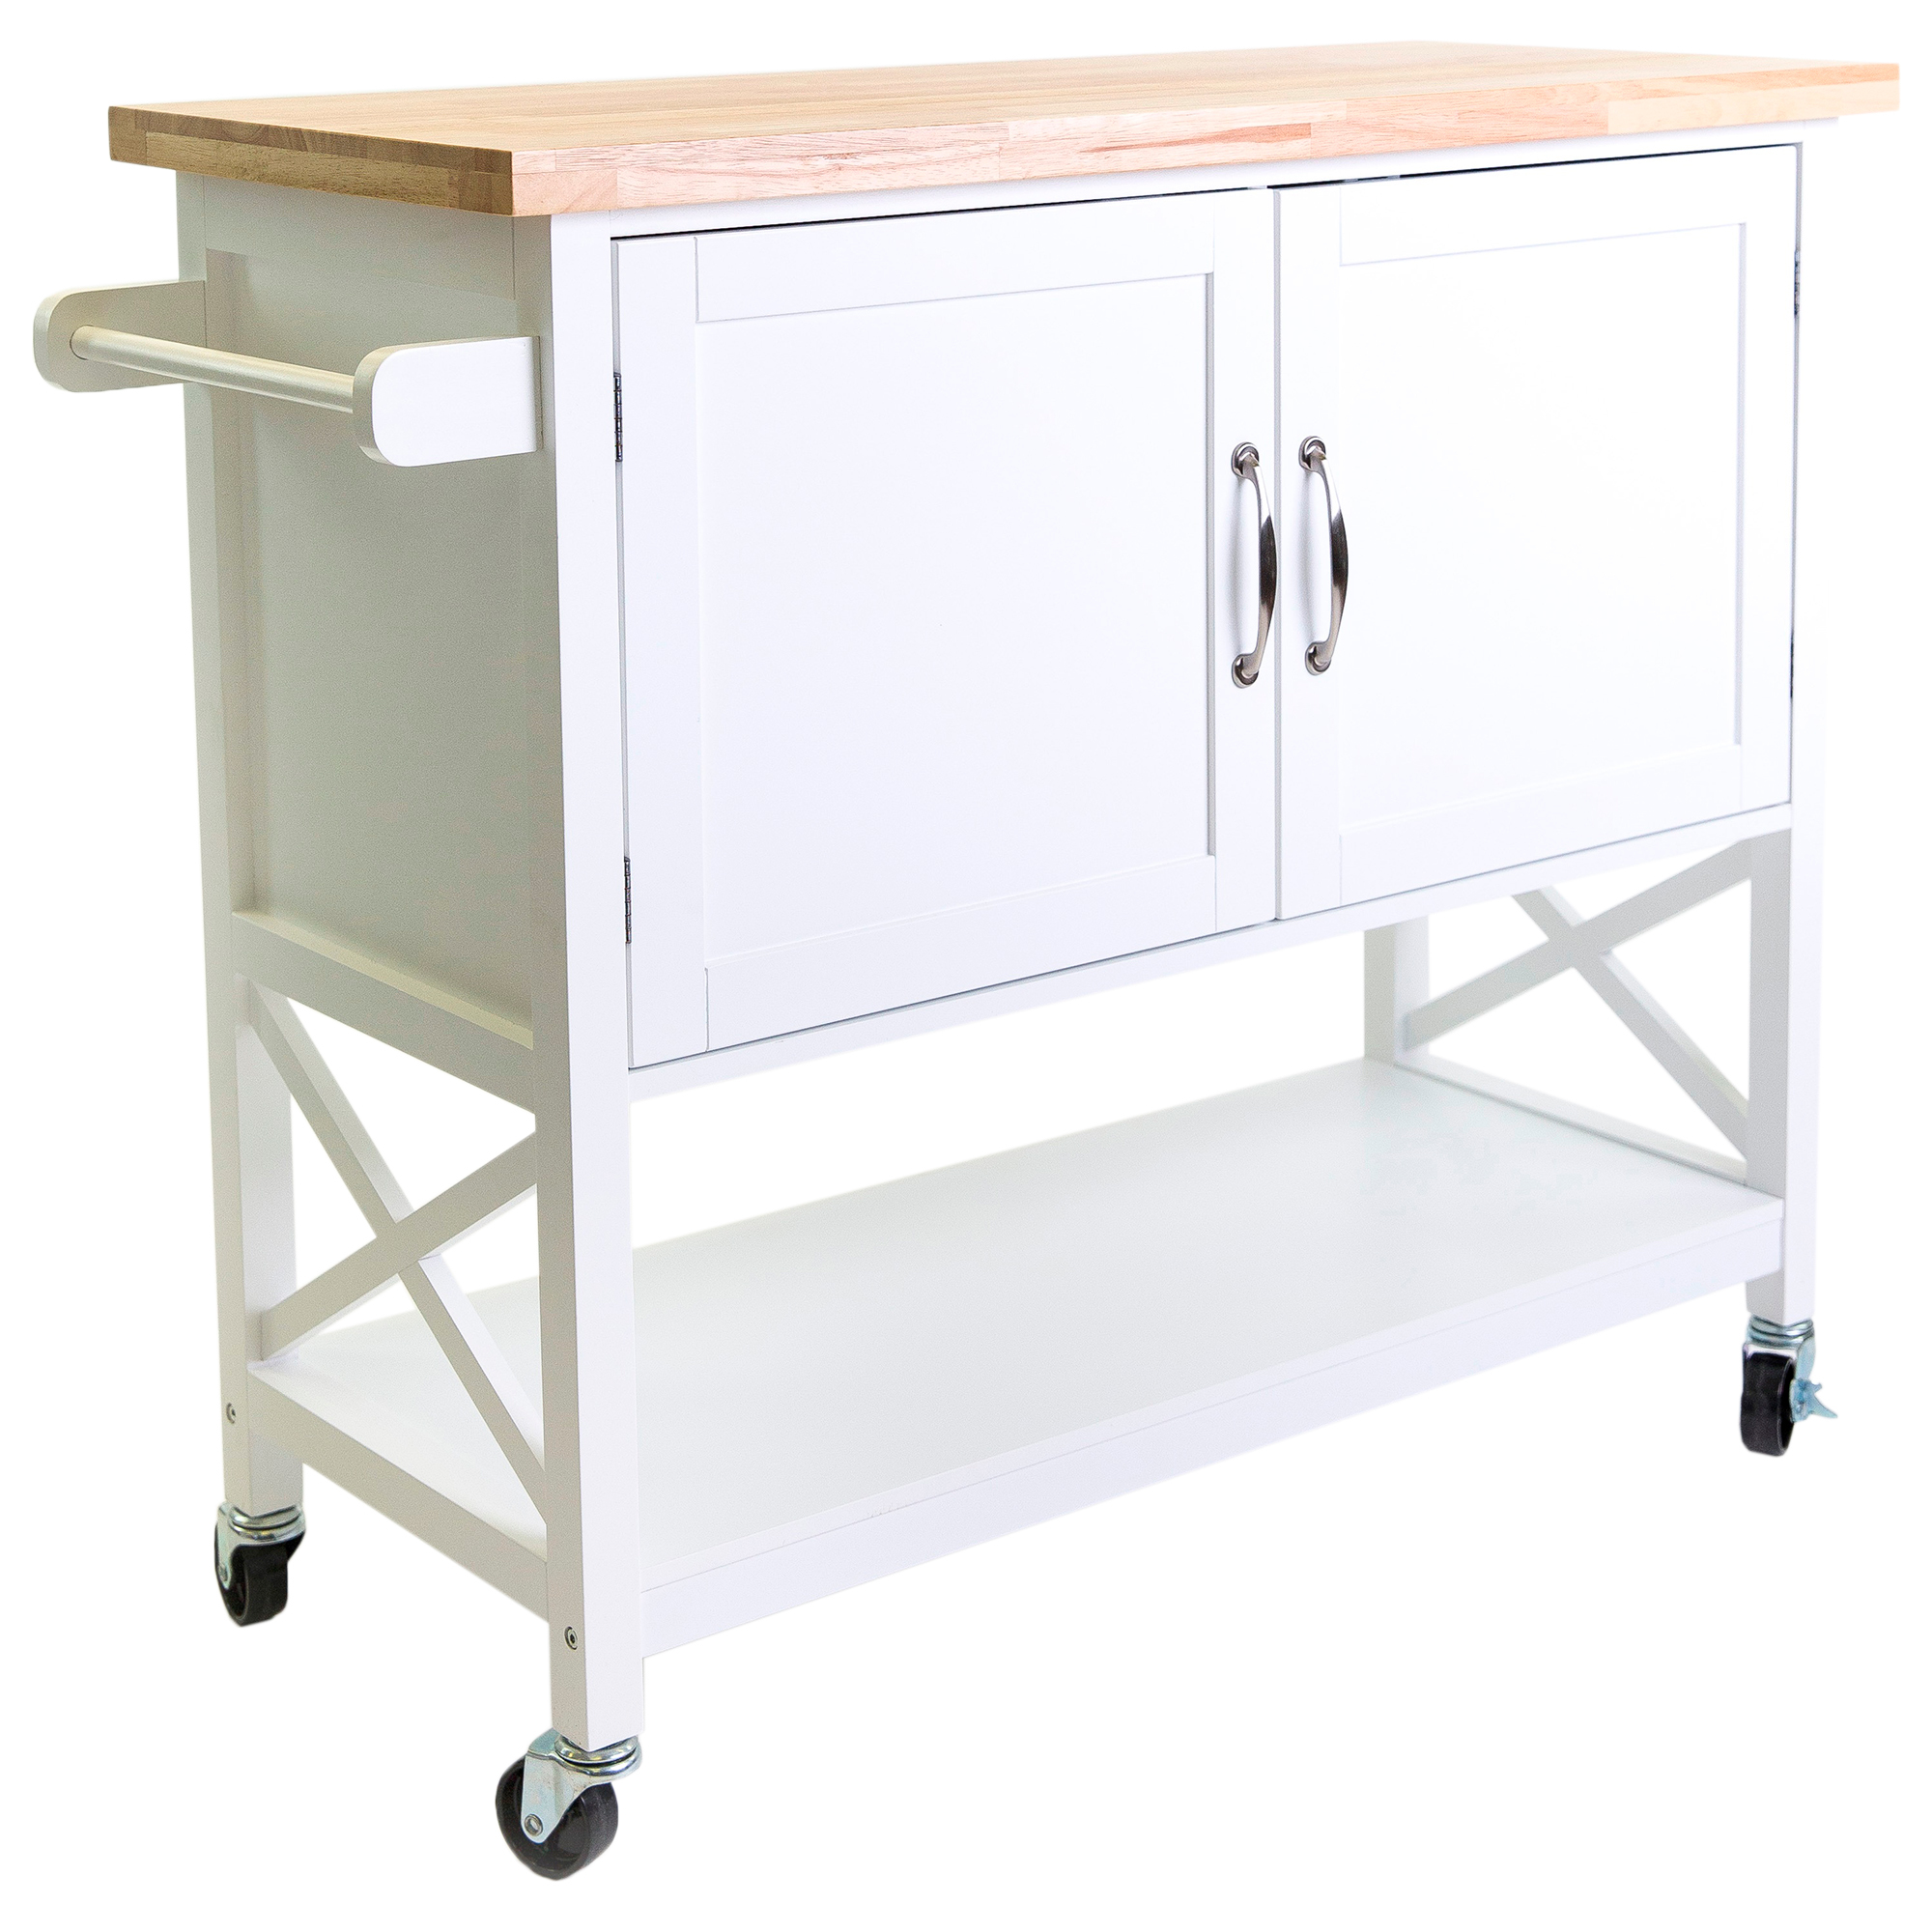 Crosley Furniture Roots Rack Natural Industrial Kitchen: Kitchen Carts House Furniture New Elwood Kitchen Trolley